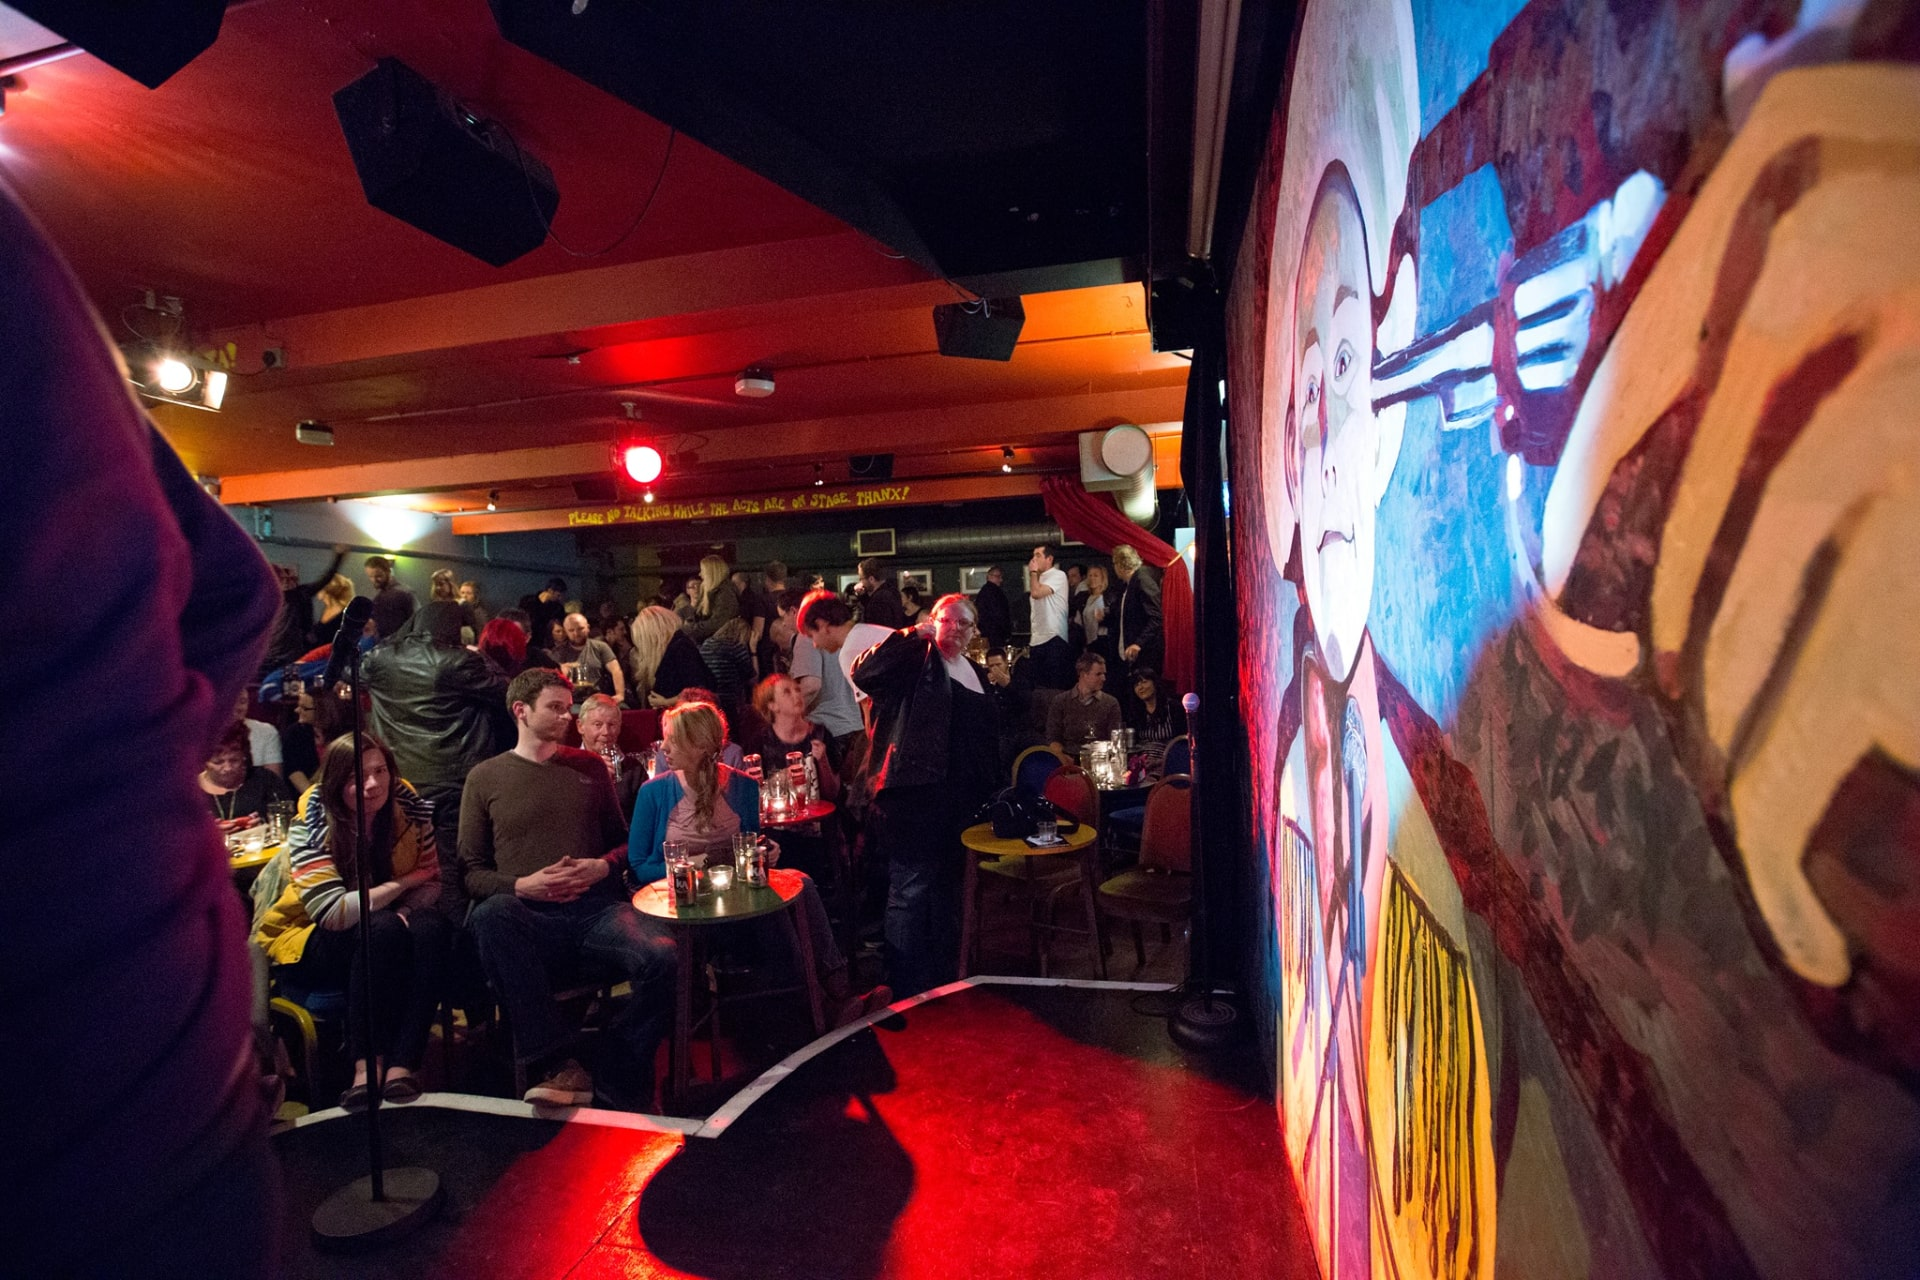 people-sitting-at-tables-and-standing-waiting-to-watch-a-comedy-gig-at-the-stand-glasgow